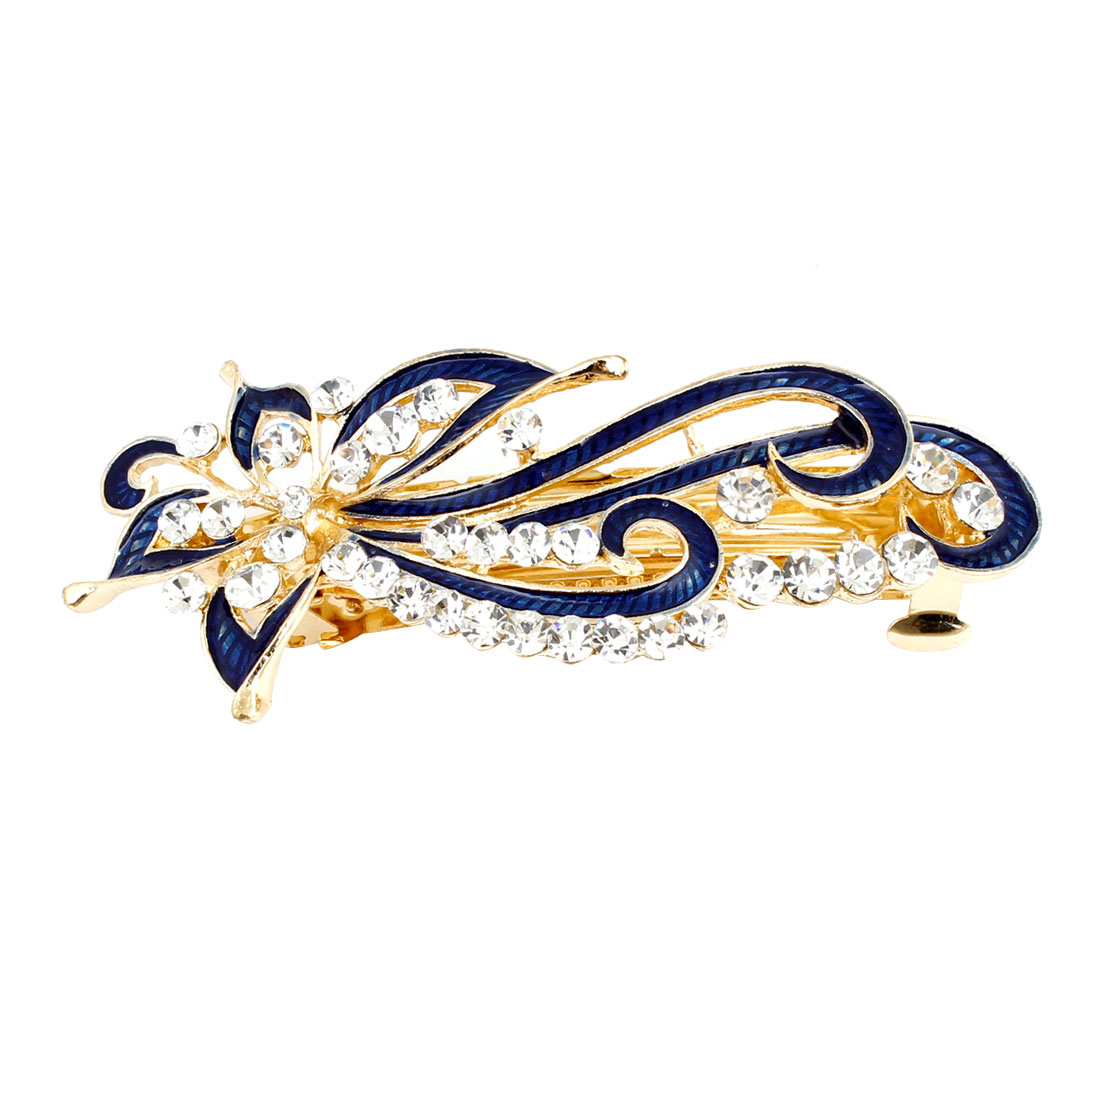 Dark Blue Rhinestones Inlaid Swirl Floral Barrette French Hair Clip